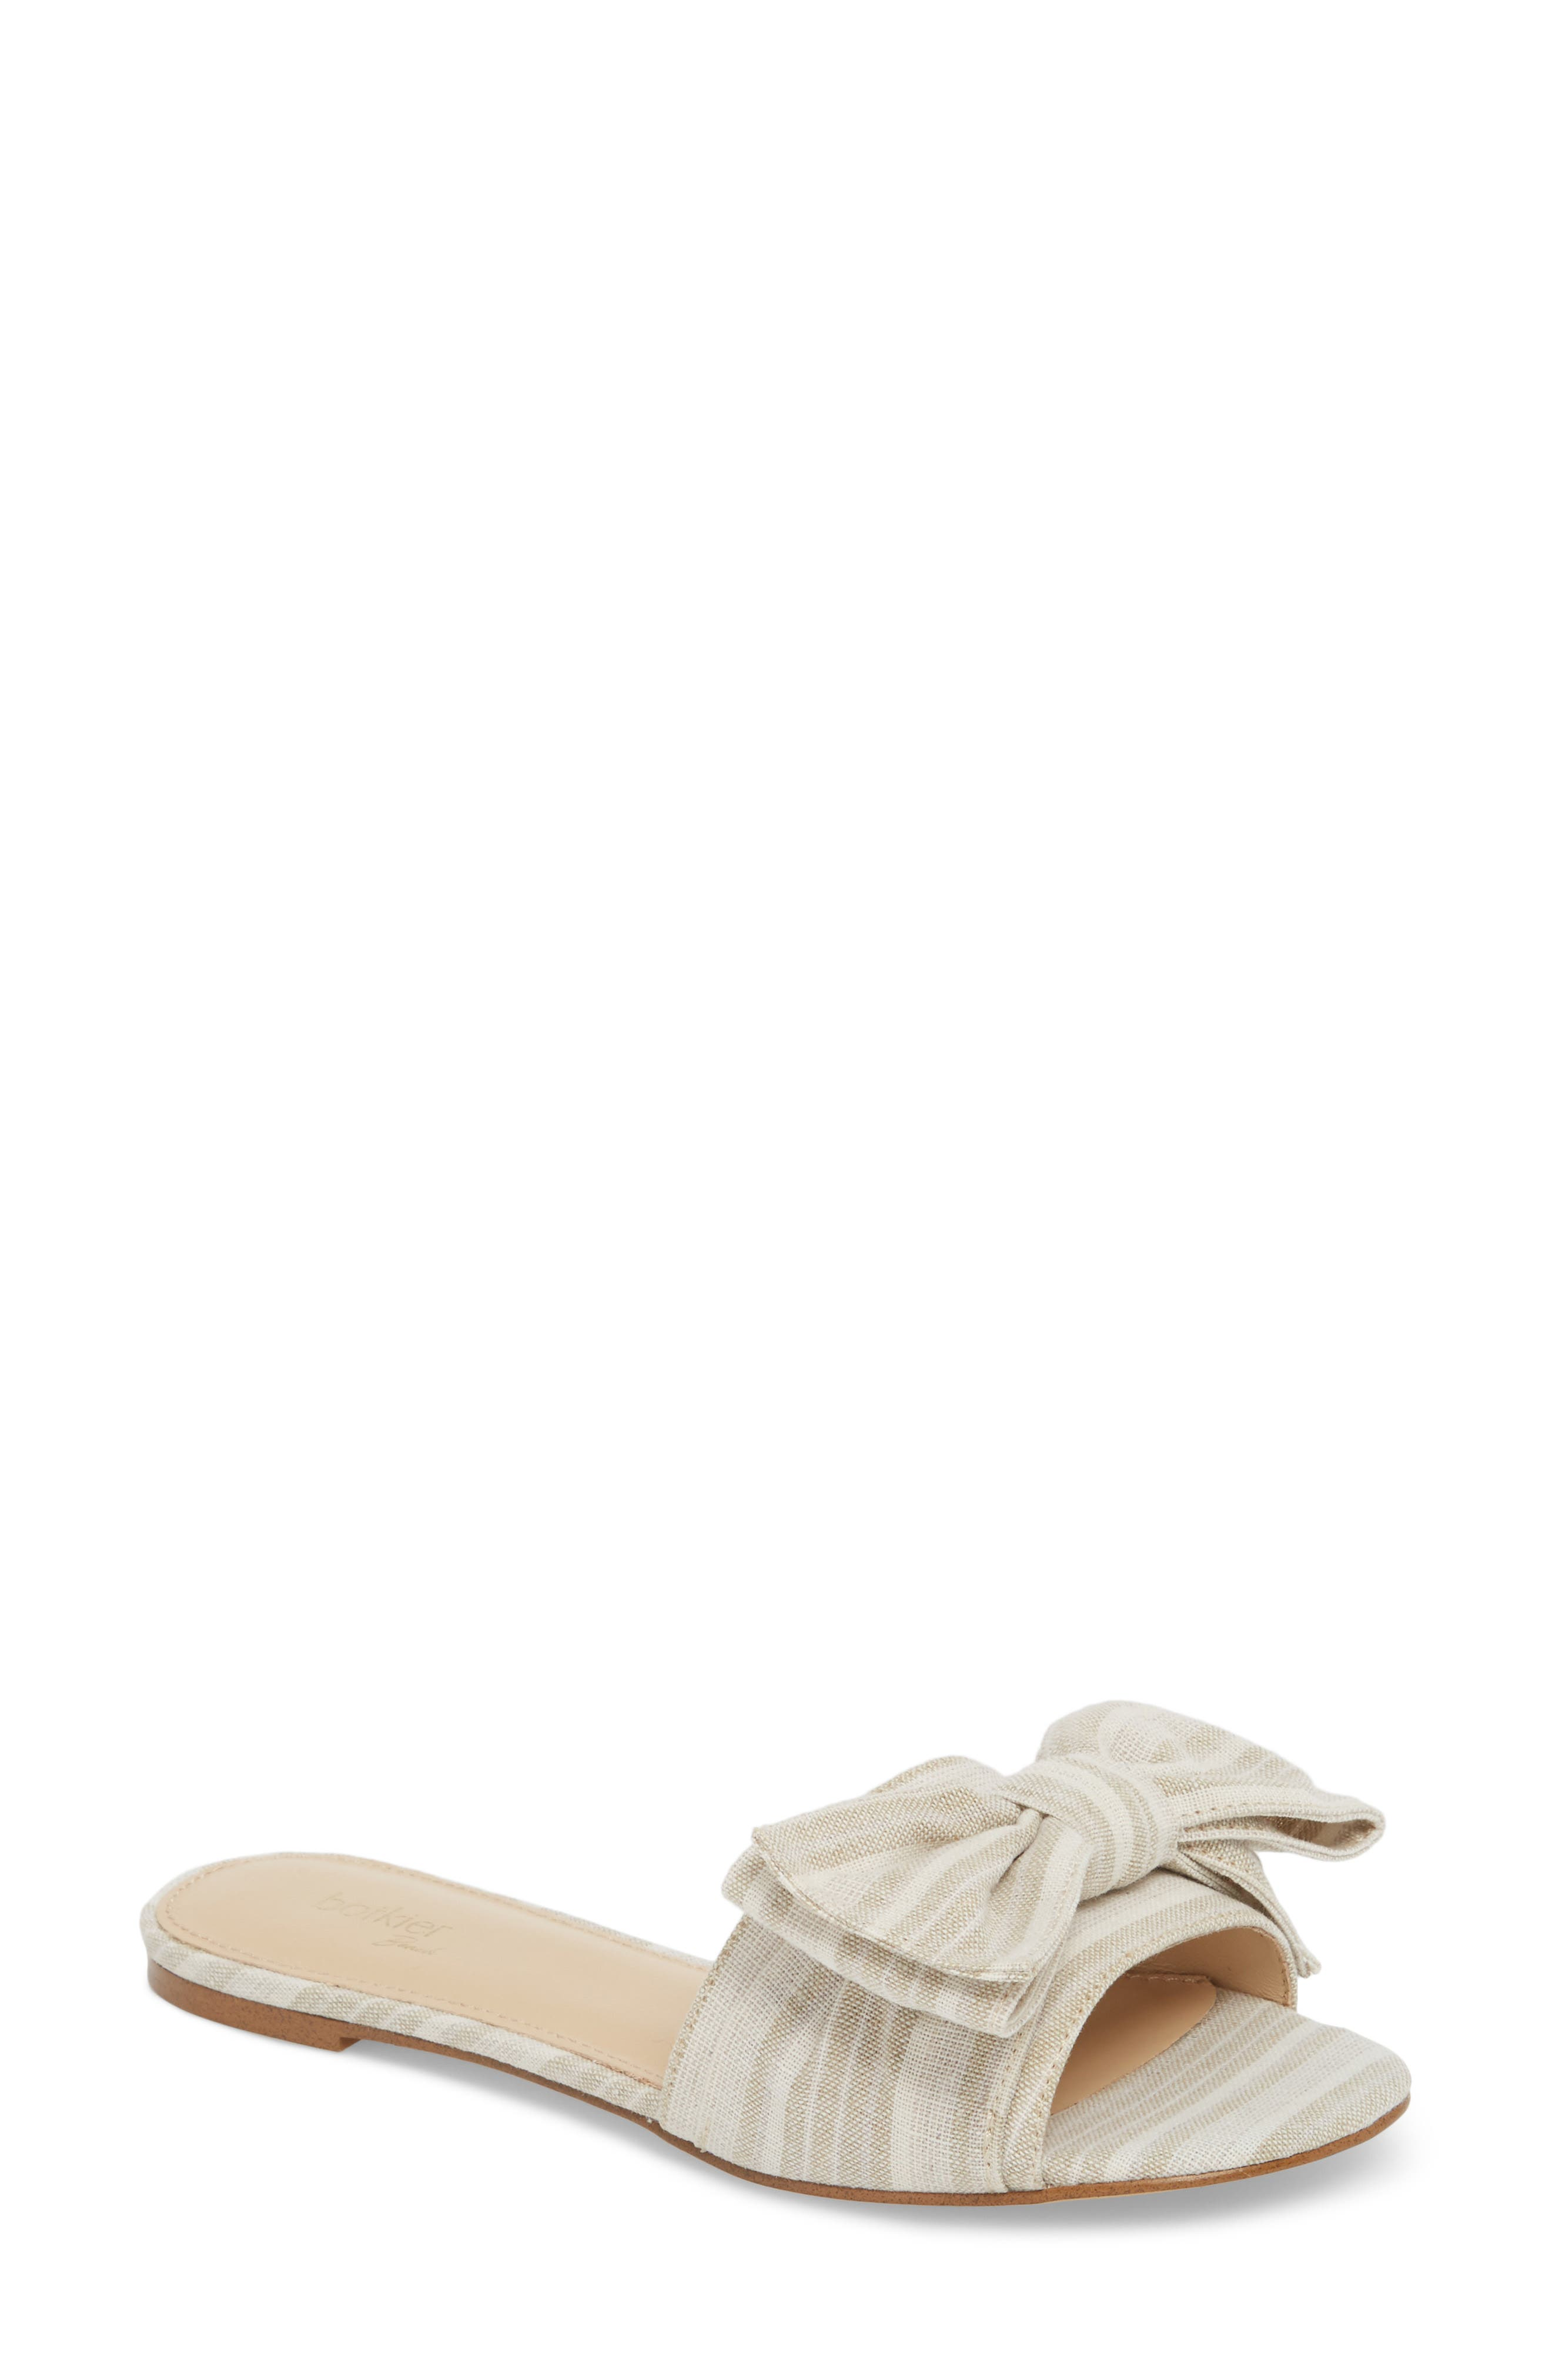 Marilyn Slide Sandal,                         Main,                         color, 020